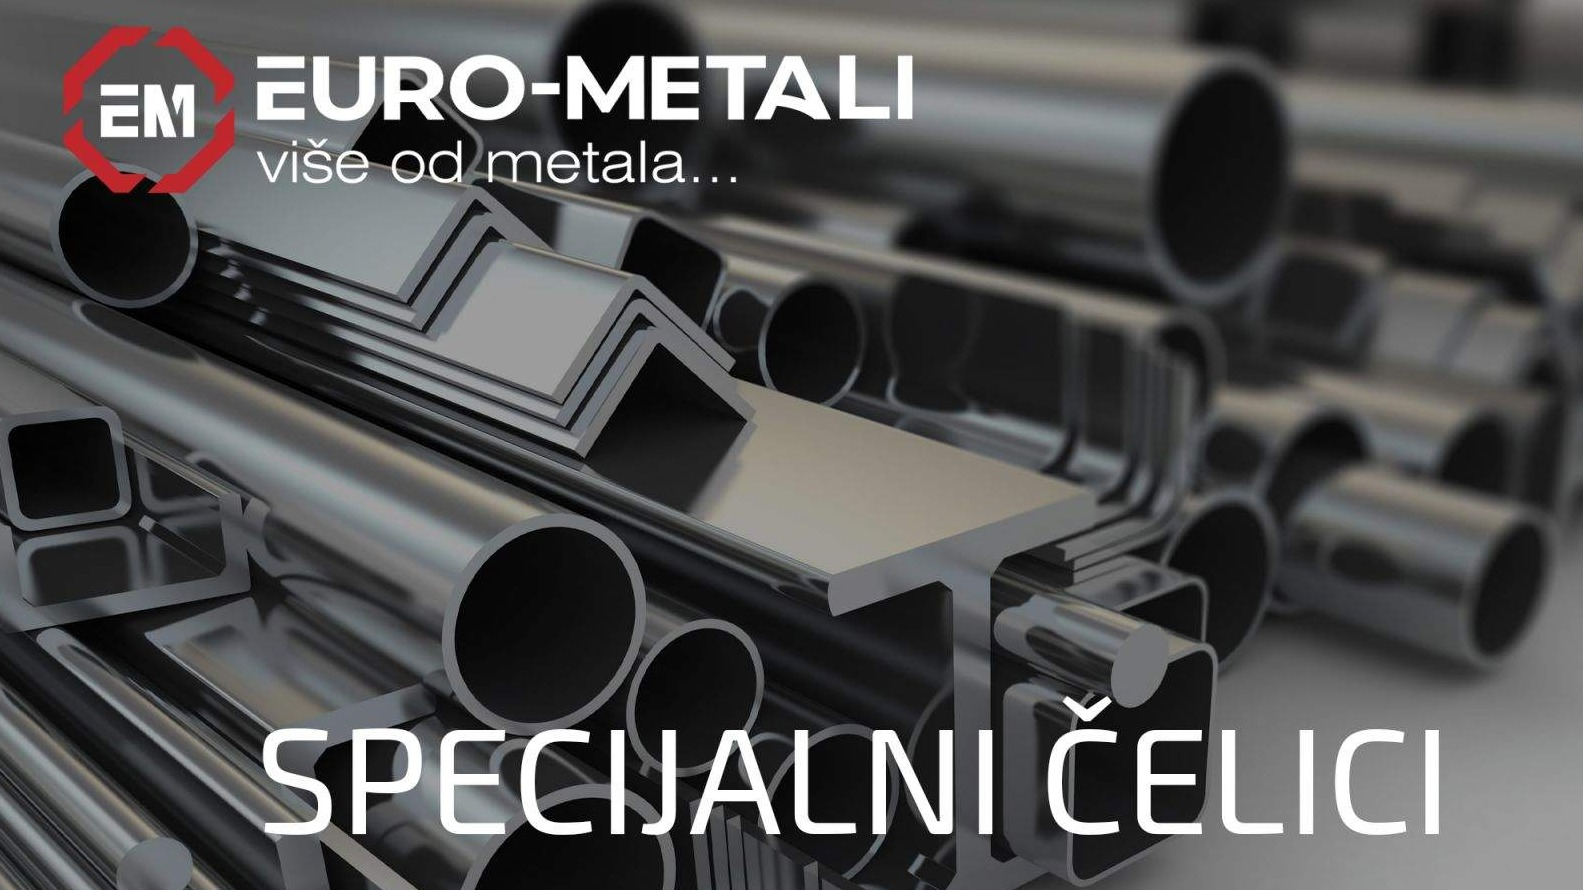 Euro Metals also offers special steels in its range